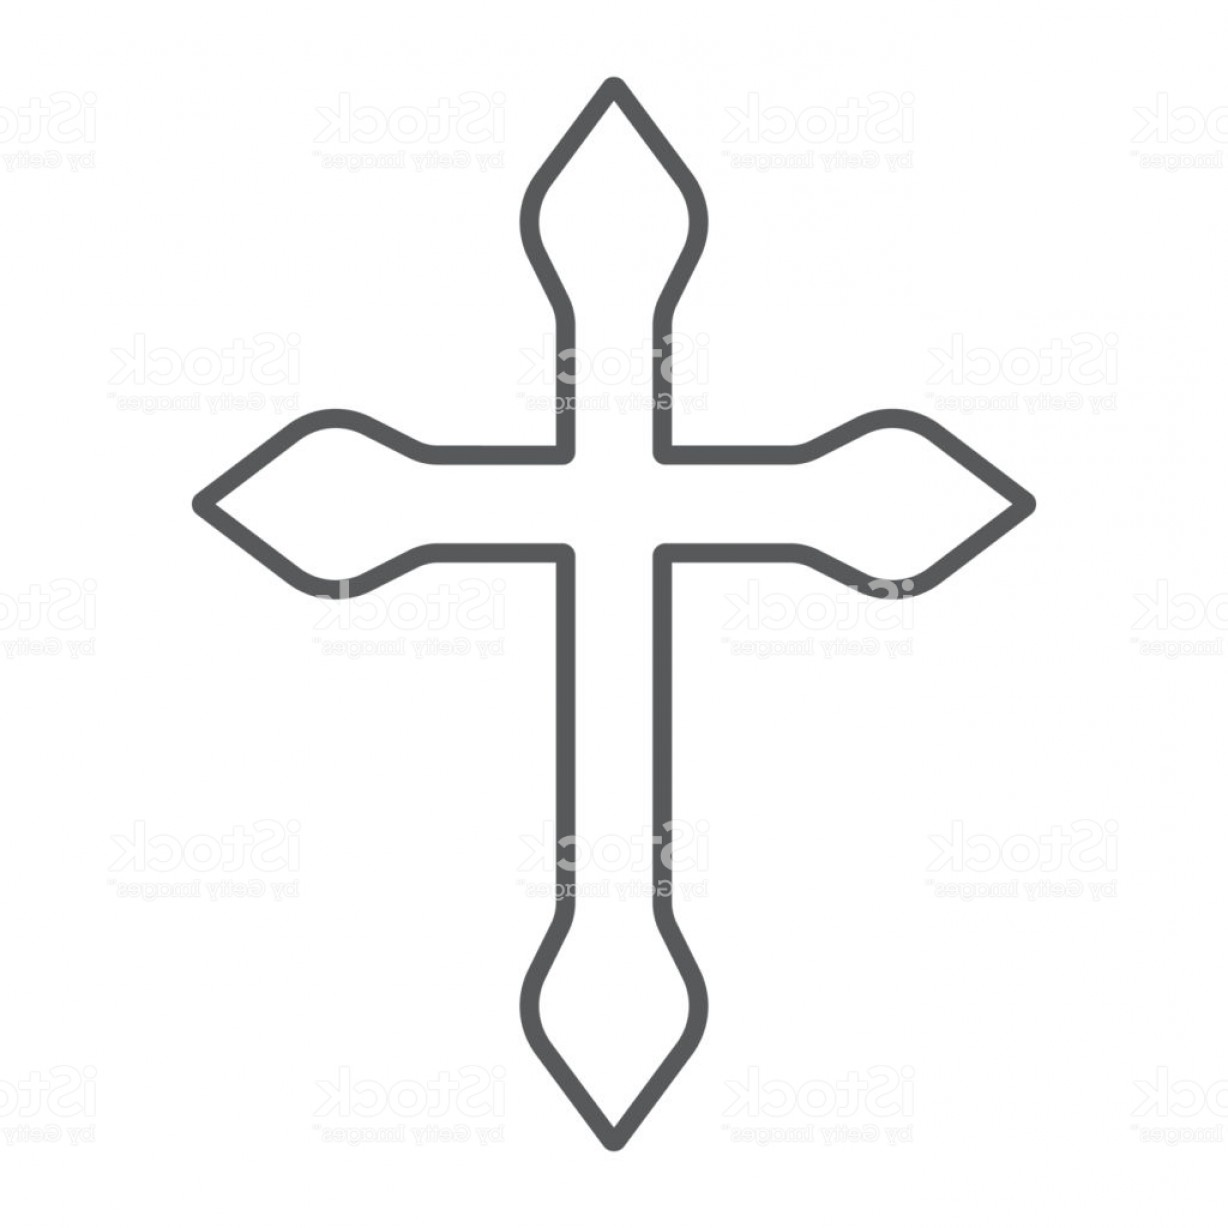 Catholic Clip Art Vector: Religion Cross Thin Line Icon Christian And Catholic Crucifix Sign Vector Graphics Gm